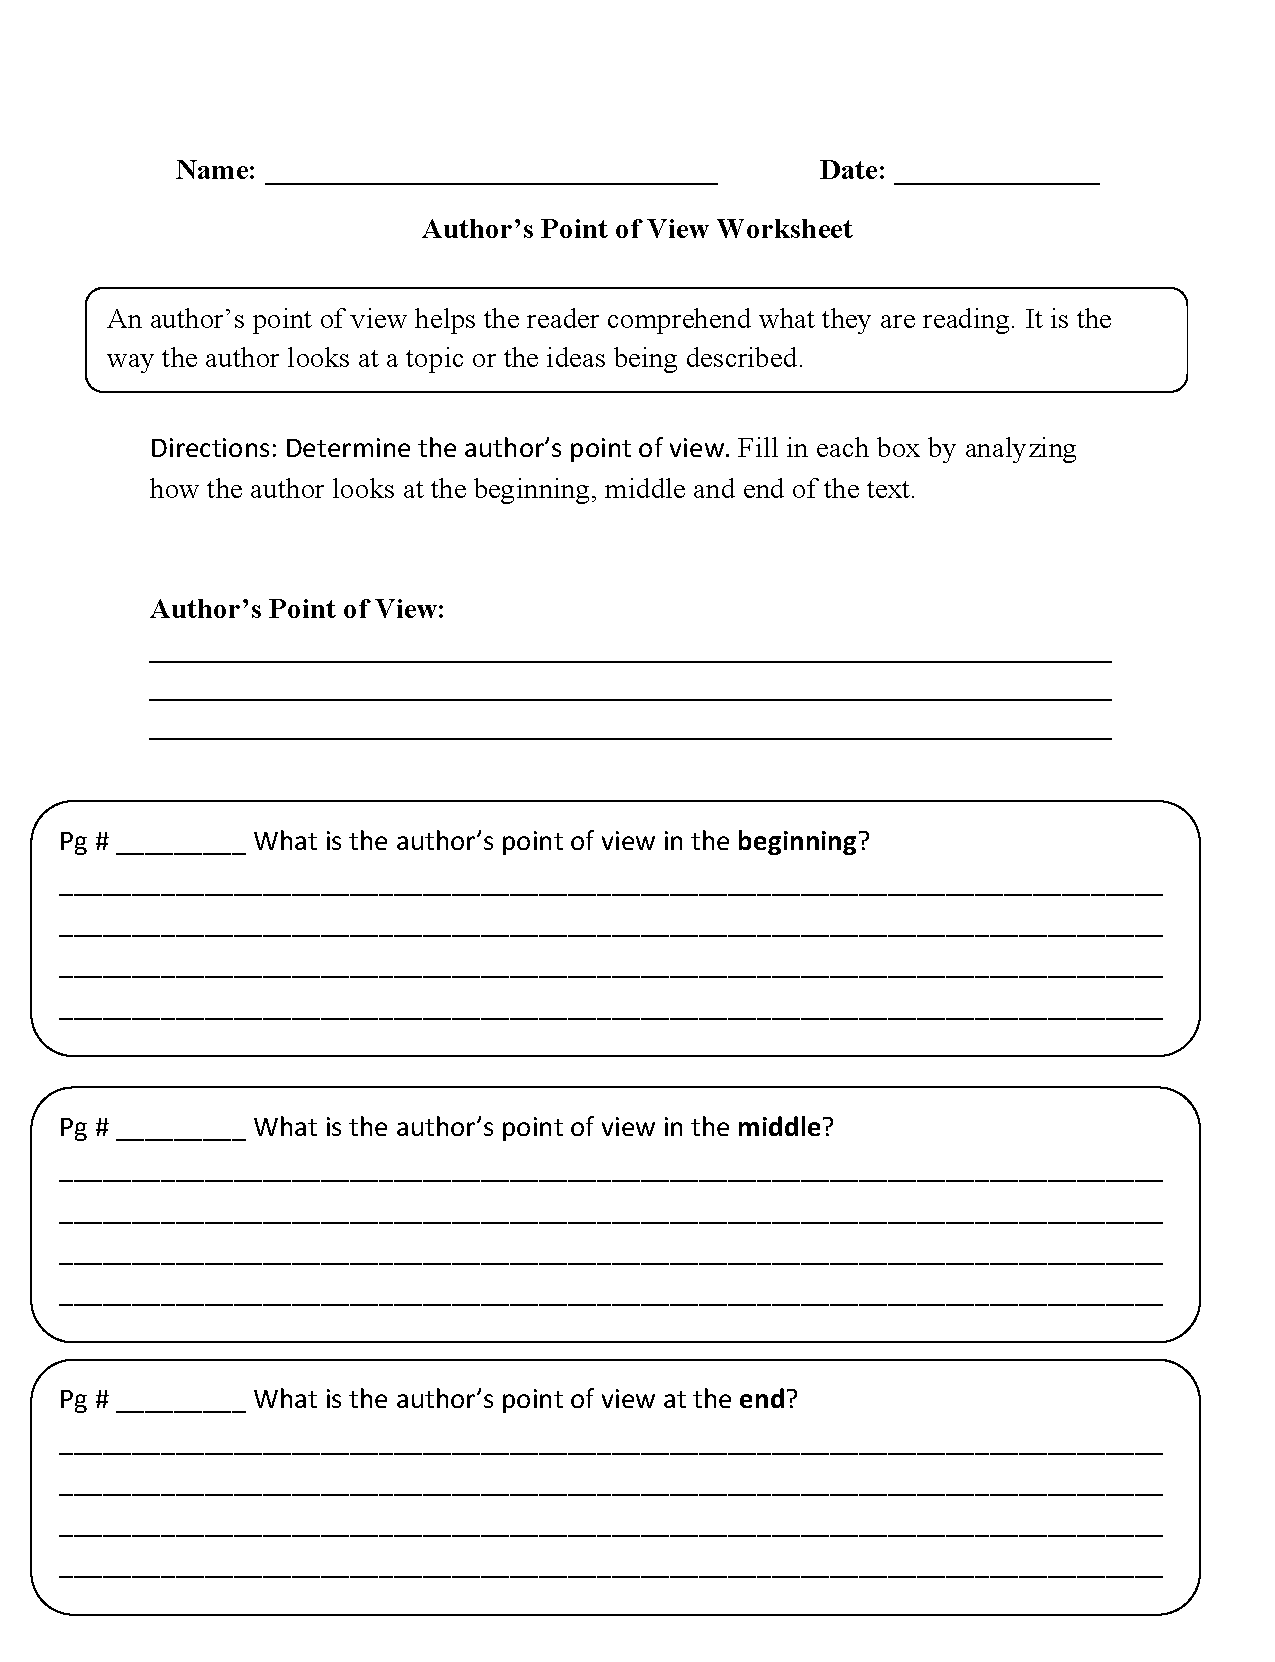 Proatmealus  Pleasant Englishlinxcom  Point Of View Worksheets With Interesting Point Of View Worksheets With Delightful Specific Heat Worksheets With Answers Also English Writing Worksheet In Addition Free Worksheets To Print And Prepostion Worksheet As Well As Distributive Law Worksheet Additionally Number Worksheet Kindergarten From Englishlinxcom With Proatmealus  Interesting Englishlinxcom  Point Of View Worksheets With Delightful Point Of View Worksheets And Pleasant Specific Heat Worksheets With Answers Also English Writing Worksheet In Addition Free Worksheets To Print From Englishlinxcom